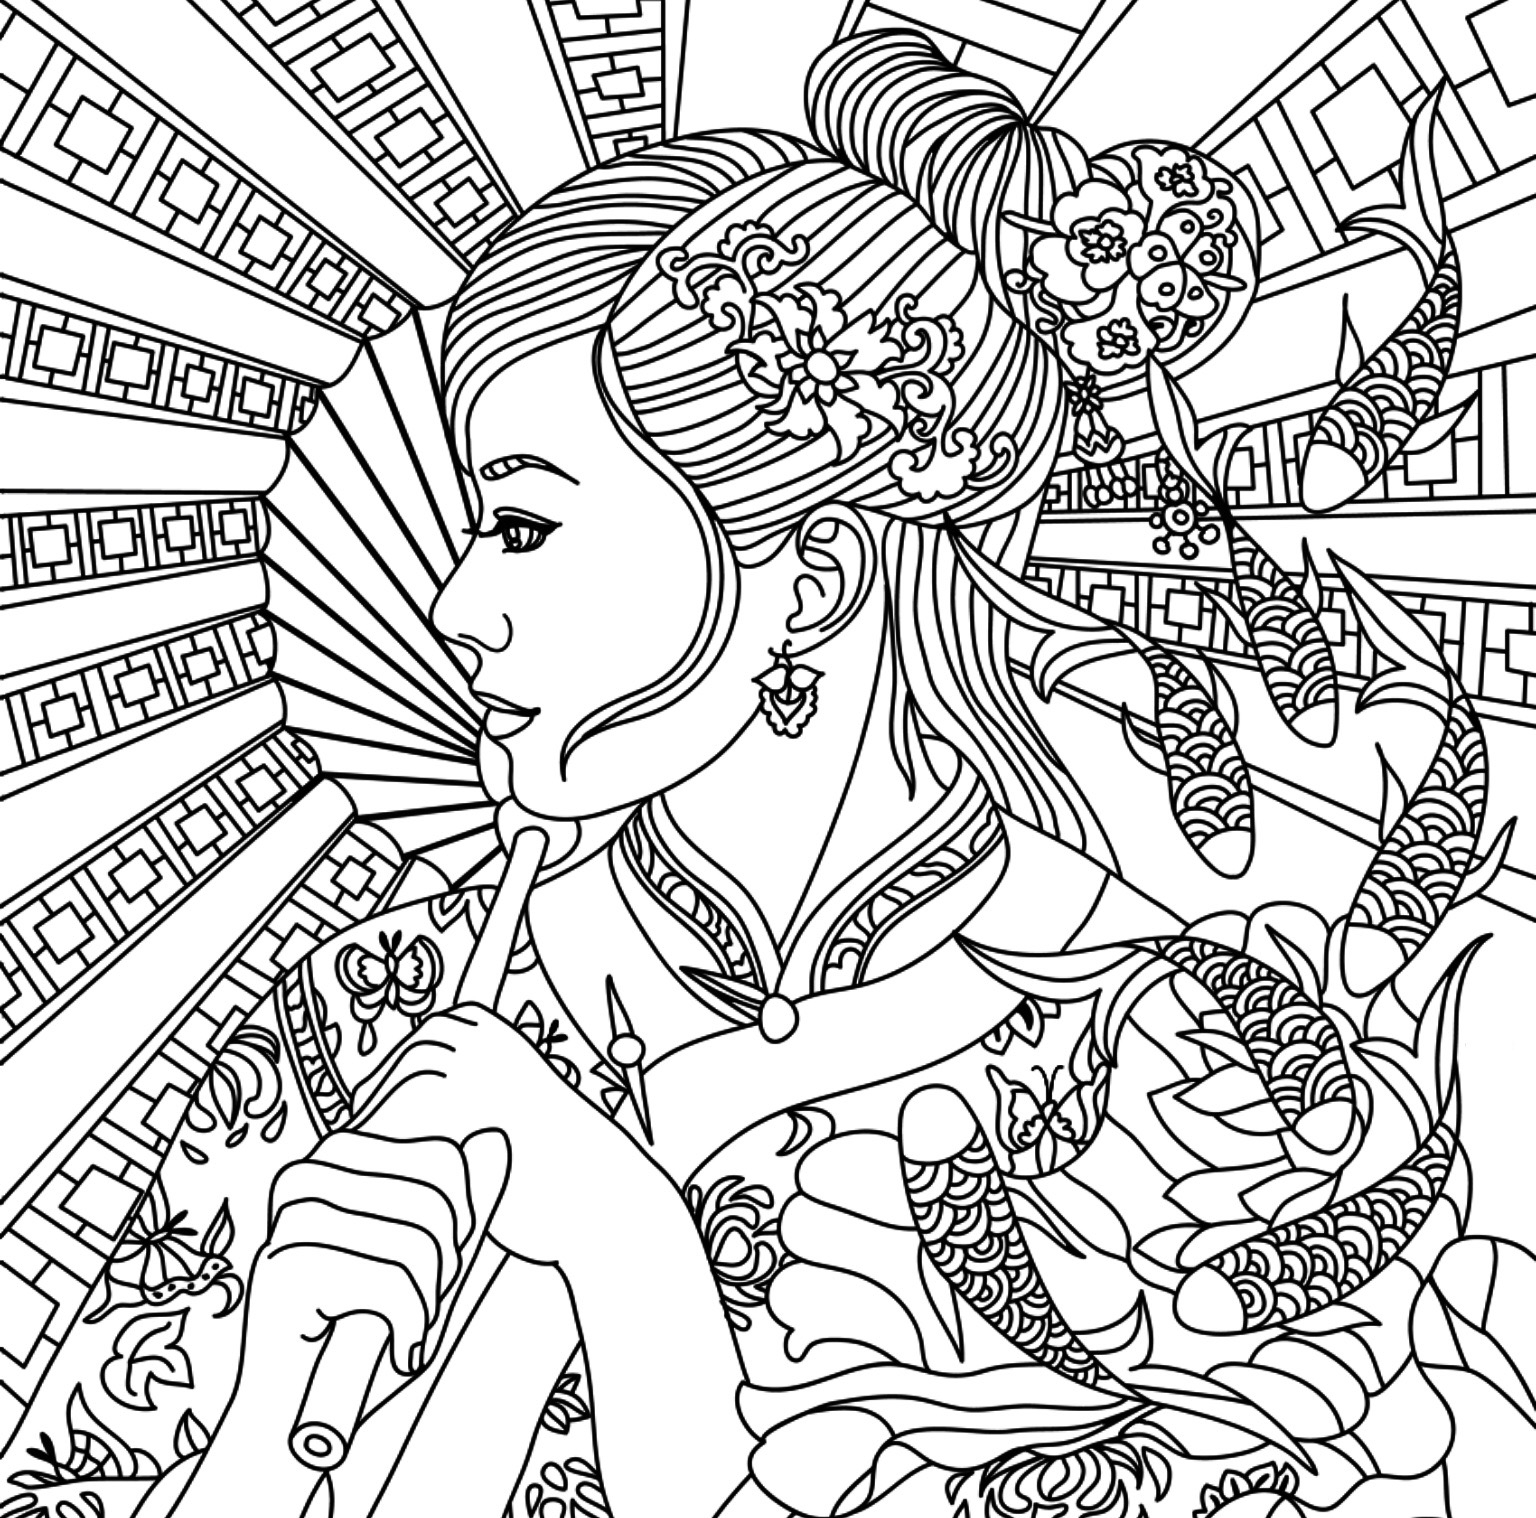 1536x1518 Printable Full Size Coloring Pages For Adults Free Printable